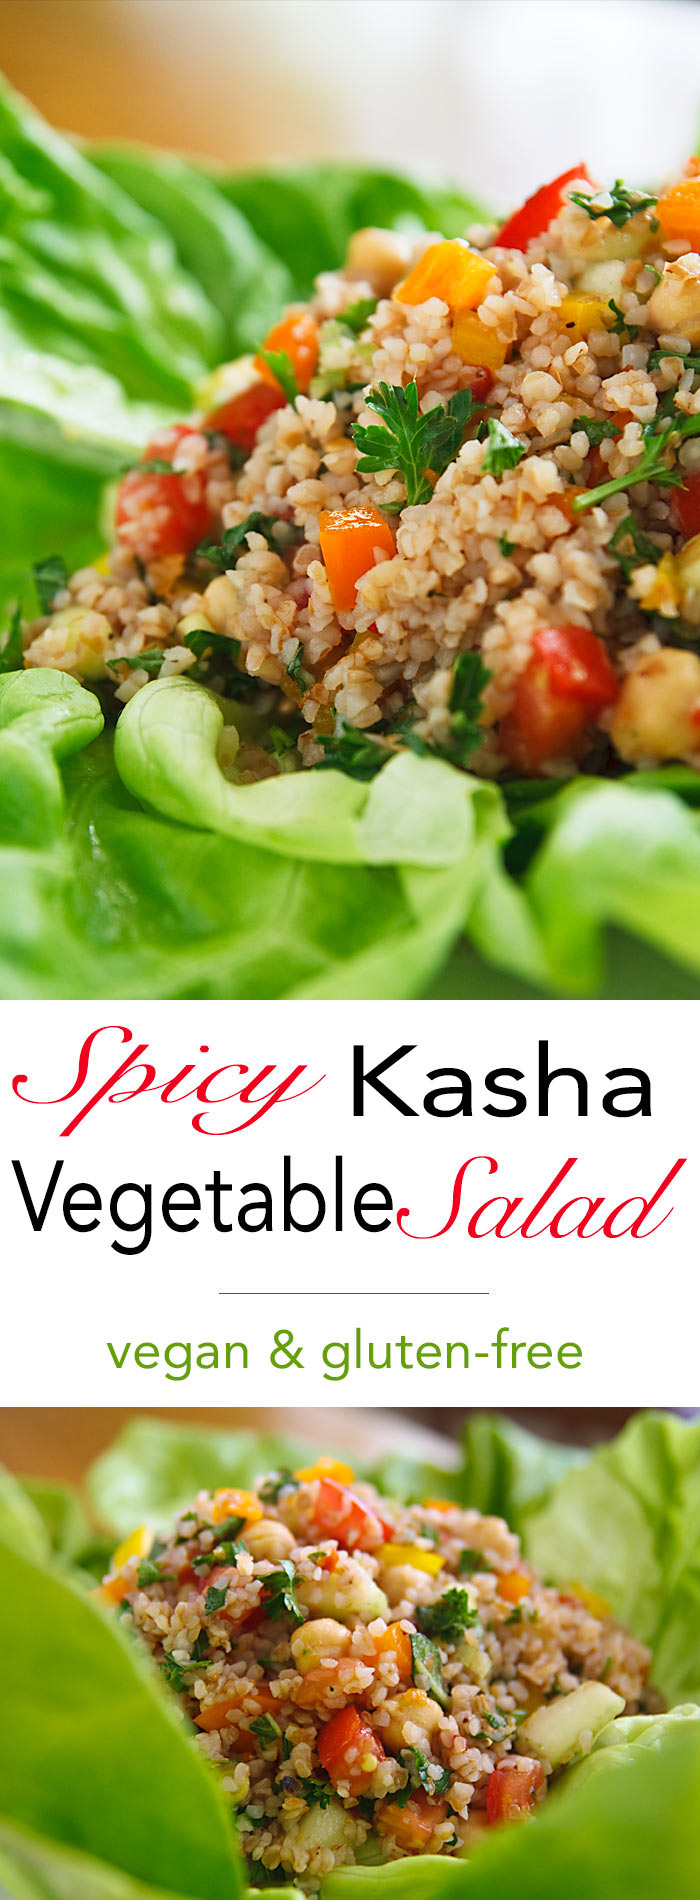 Kasha is the perfect gluten-free replacement for bulgar wheat. This spicy, low-fat and gluten-free salad is similar to a Turkish salad called kisir.